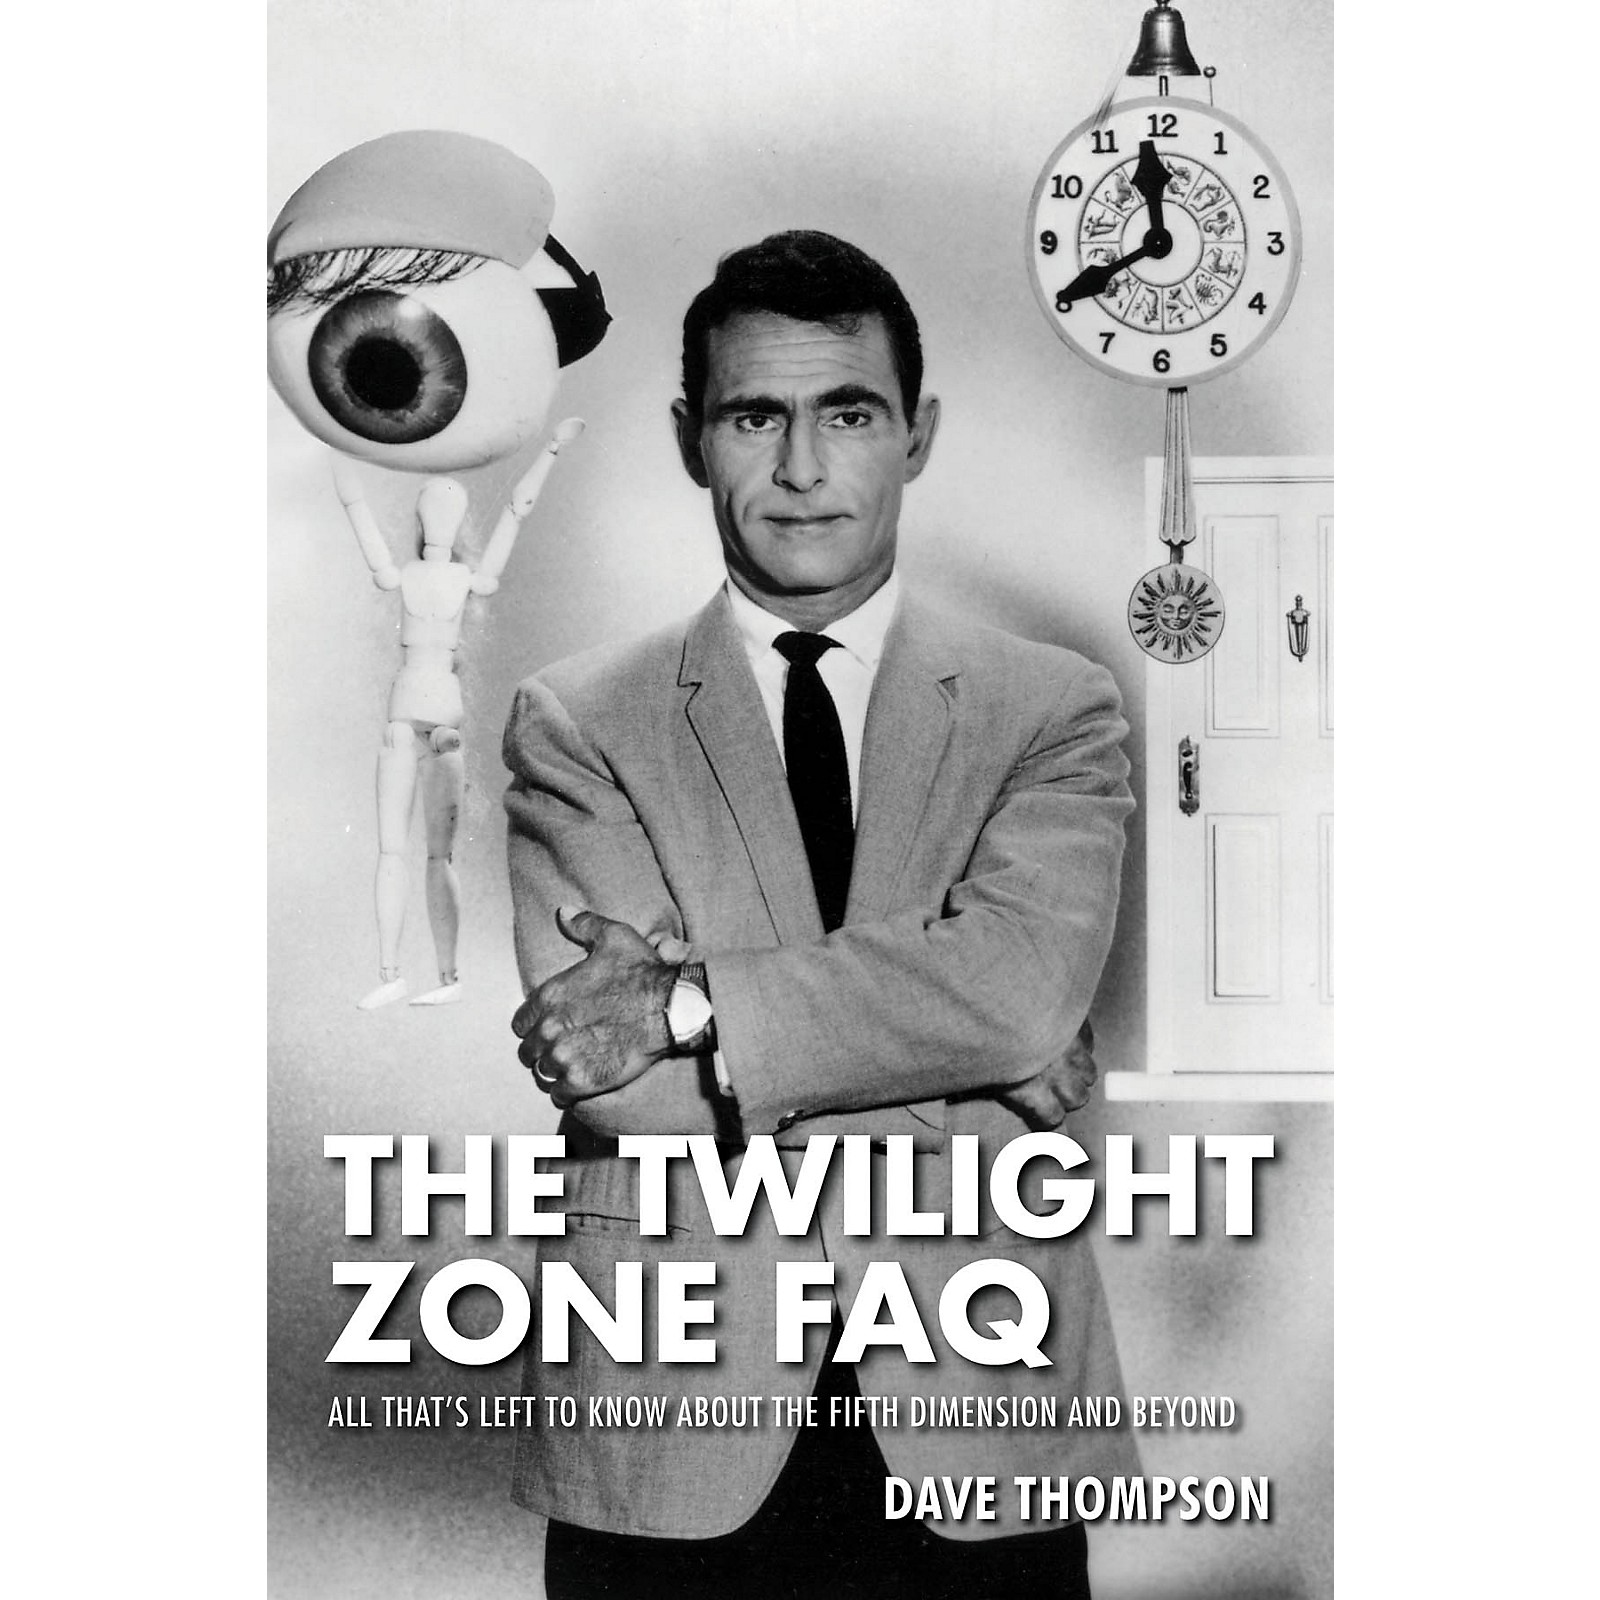 Applause Books The Twilight Zone FAQ FAQ Series Softcover Written by Dave Thompson